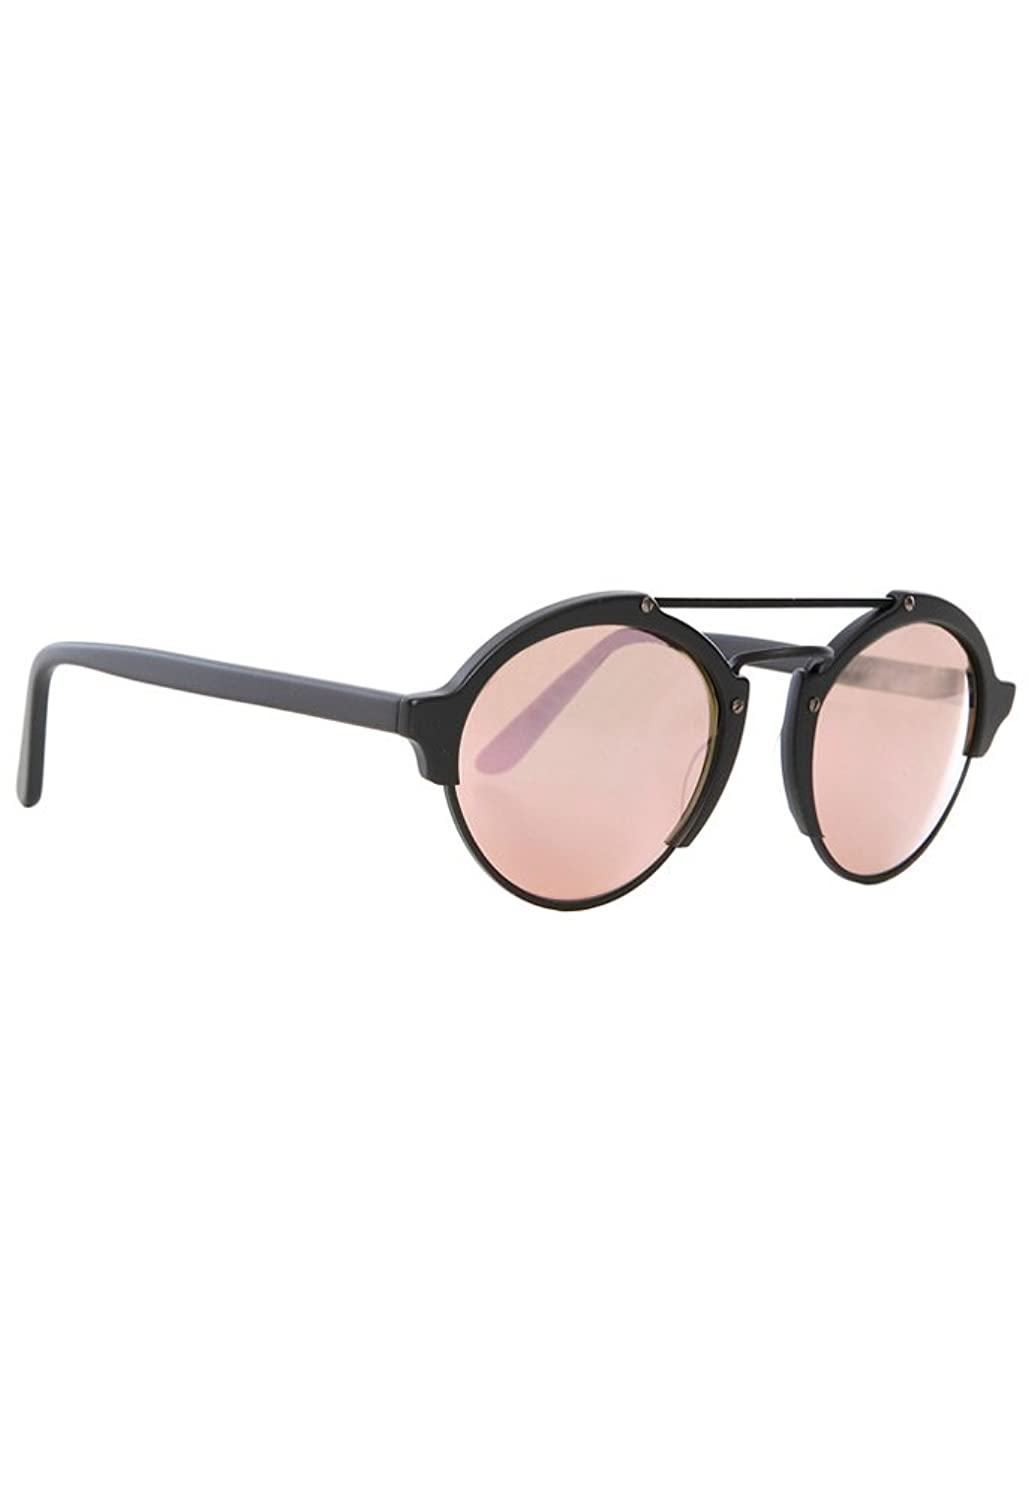 5d89173d0a1fe hot sale 2017 ILLESTEVA MILAN II MILAN 2 MATTE BLACK WITH ROSE MIRRORED  LENSES